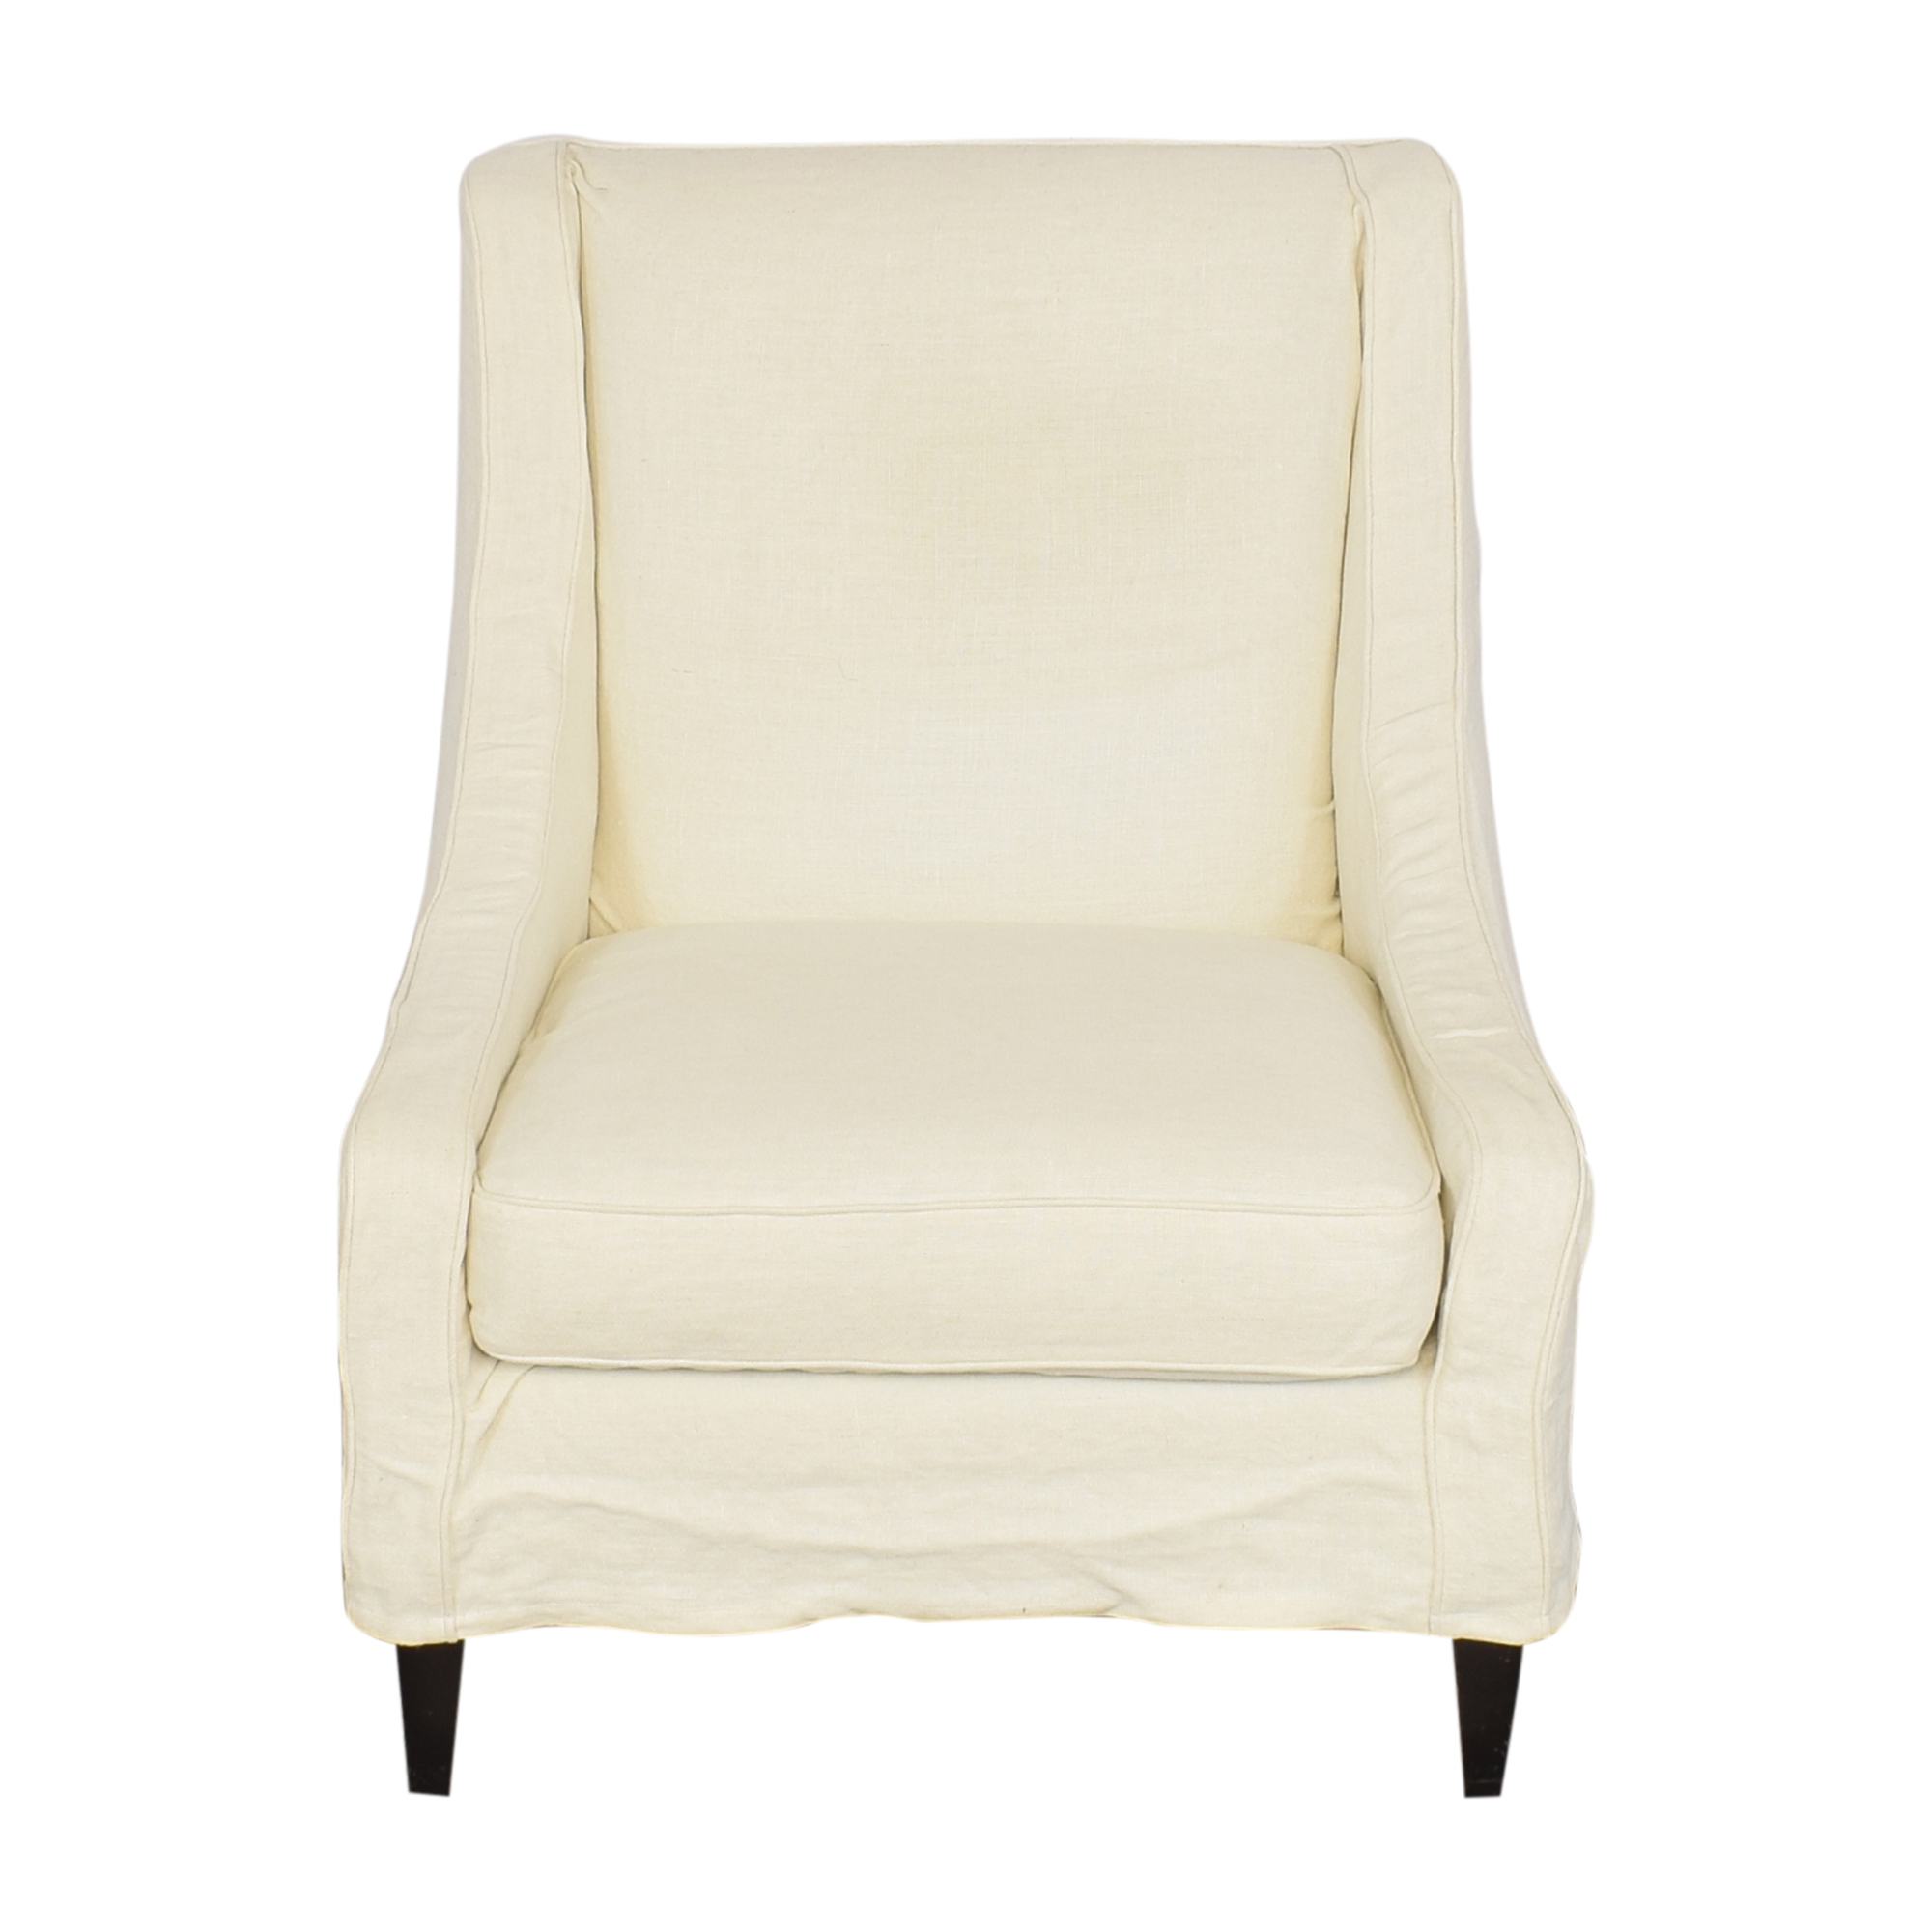 Crate & Barrel Slipcovered Accent Chair / Accent Chairs